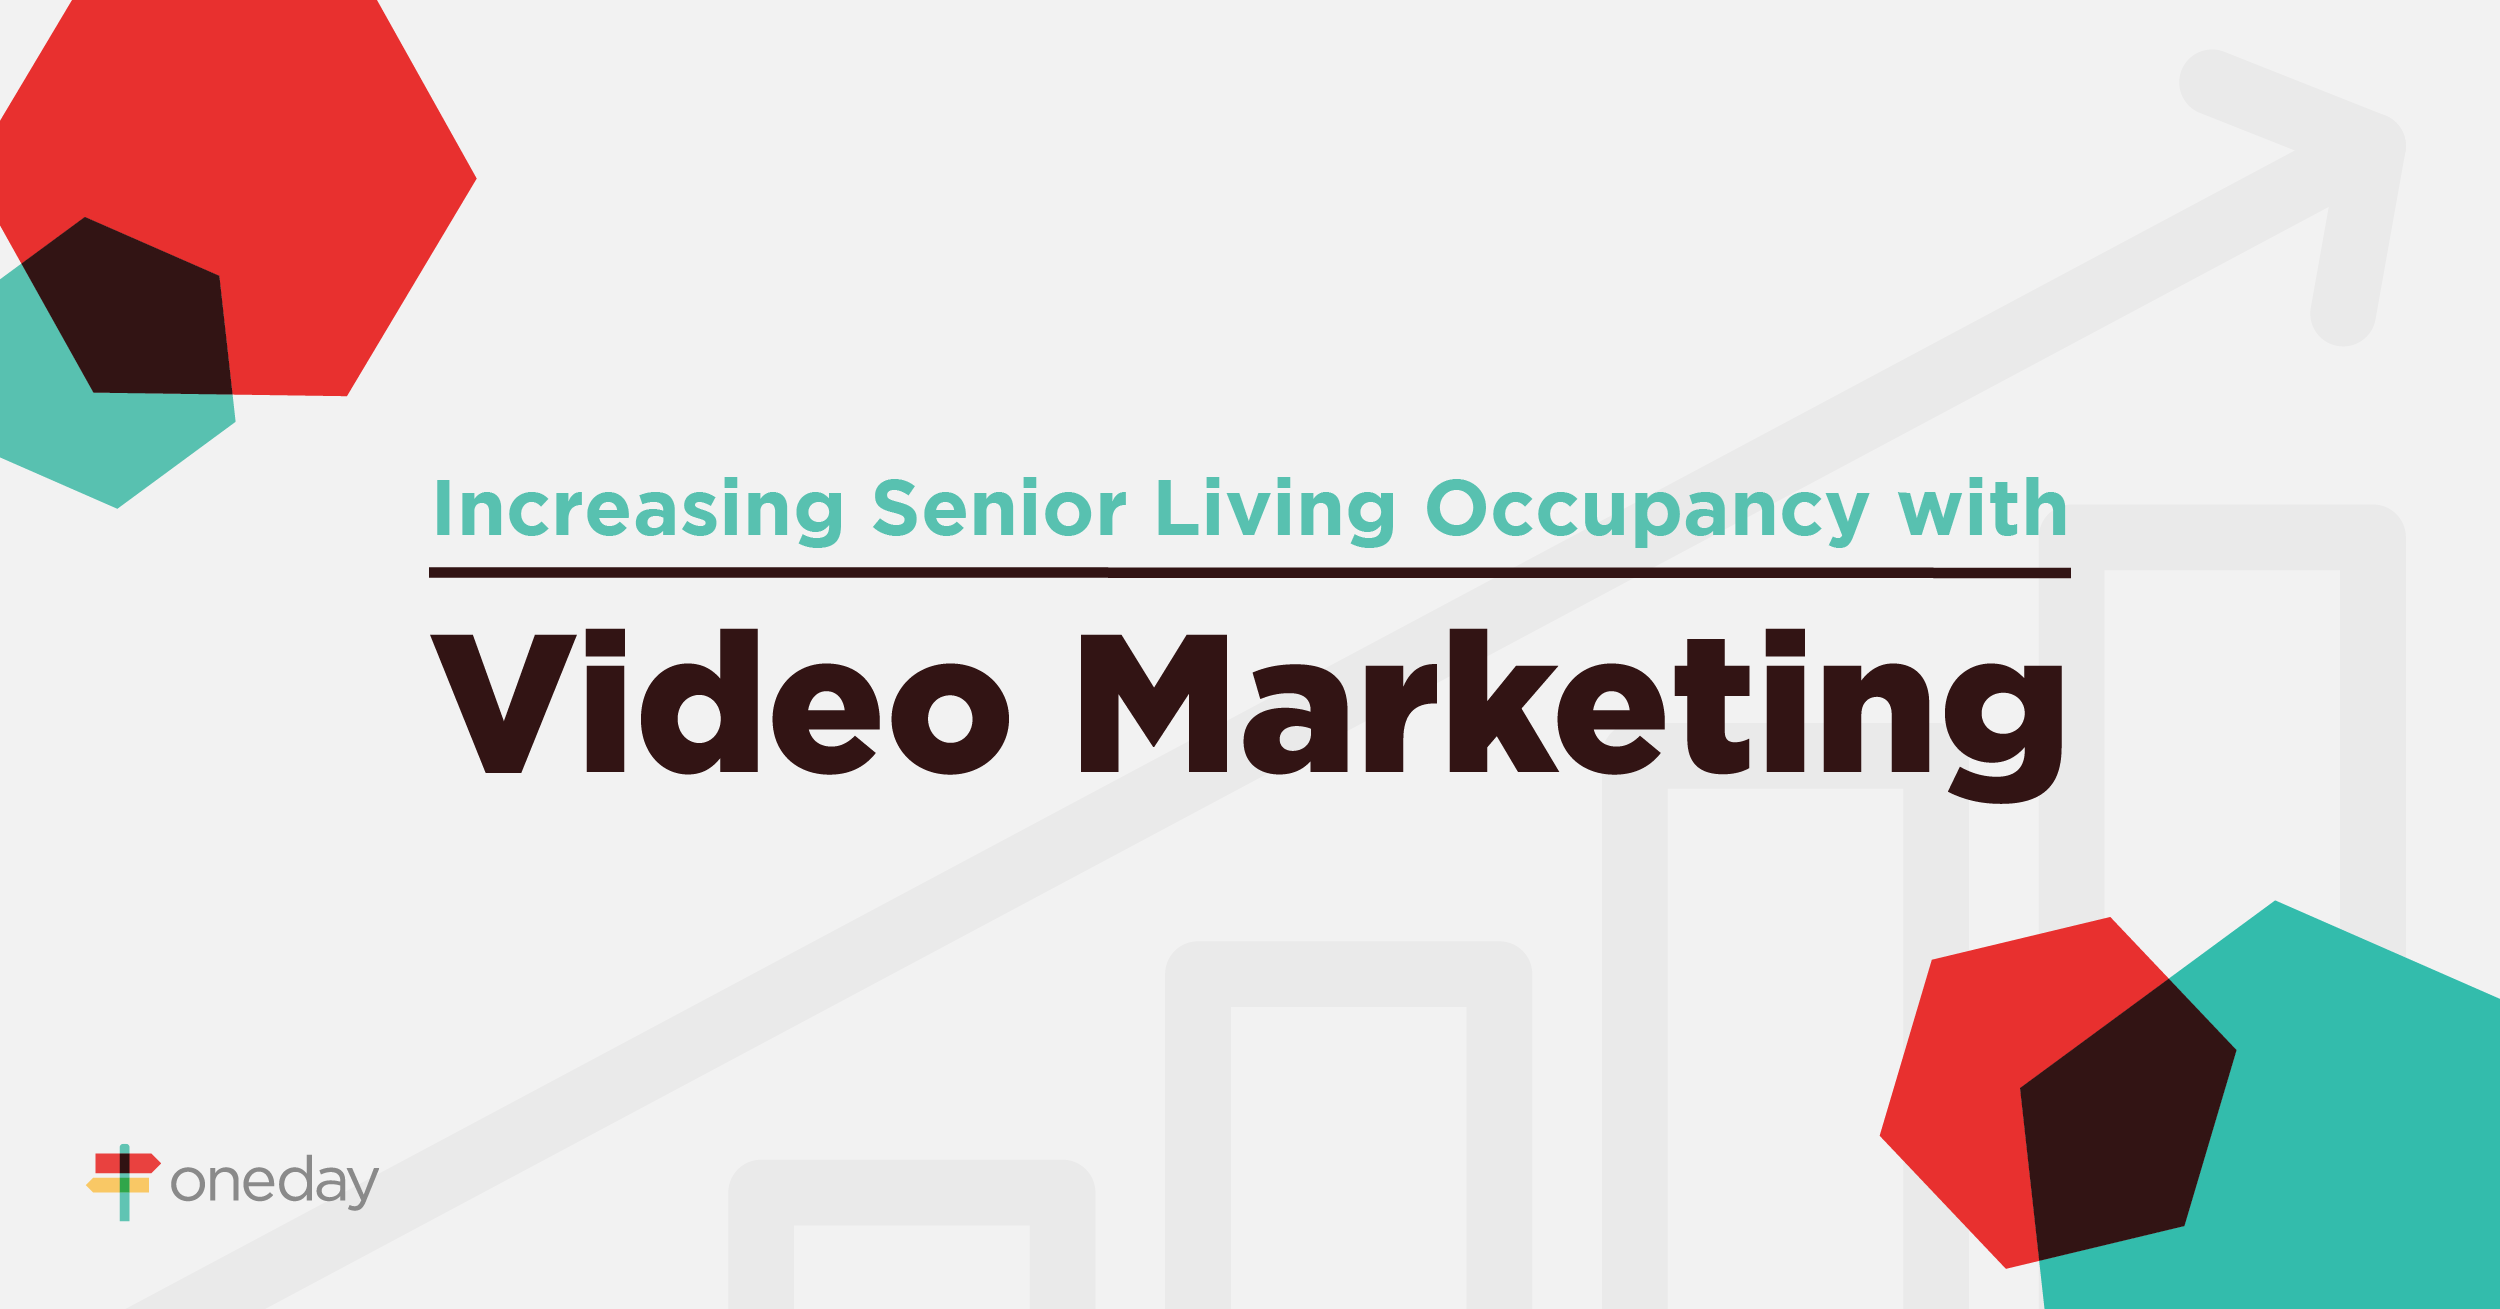 Increasing Senior Living Occupancy with Video Marketing